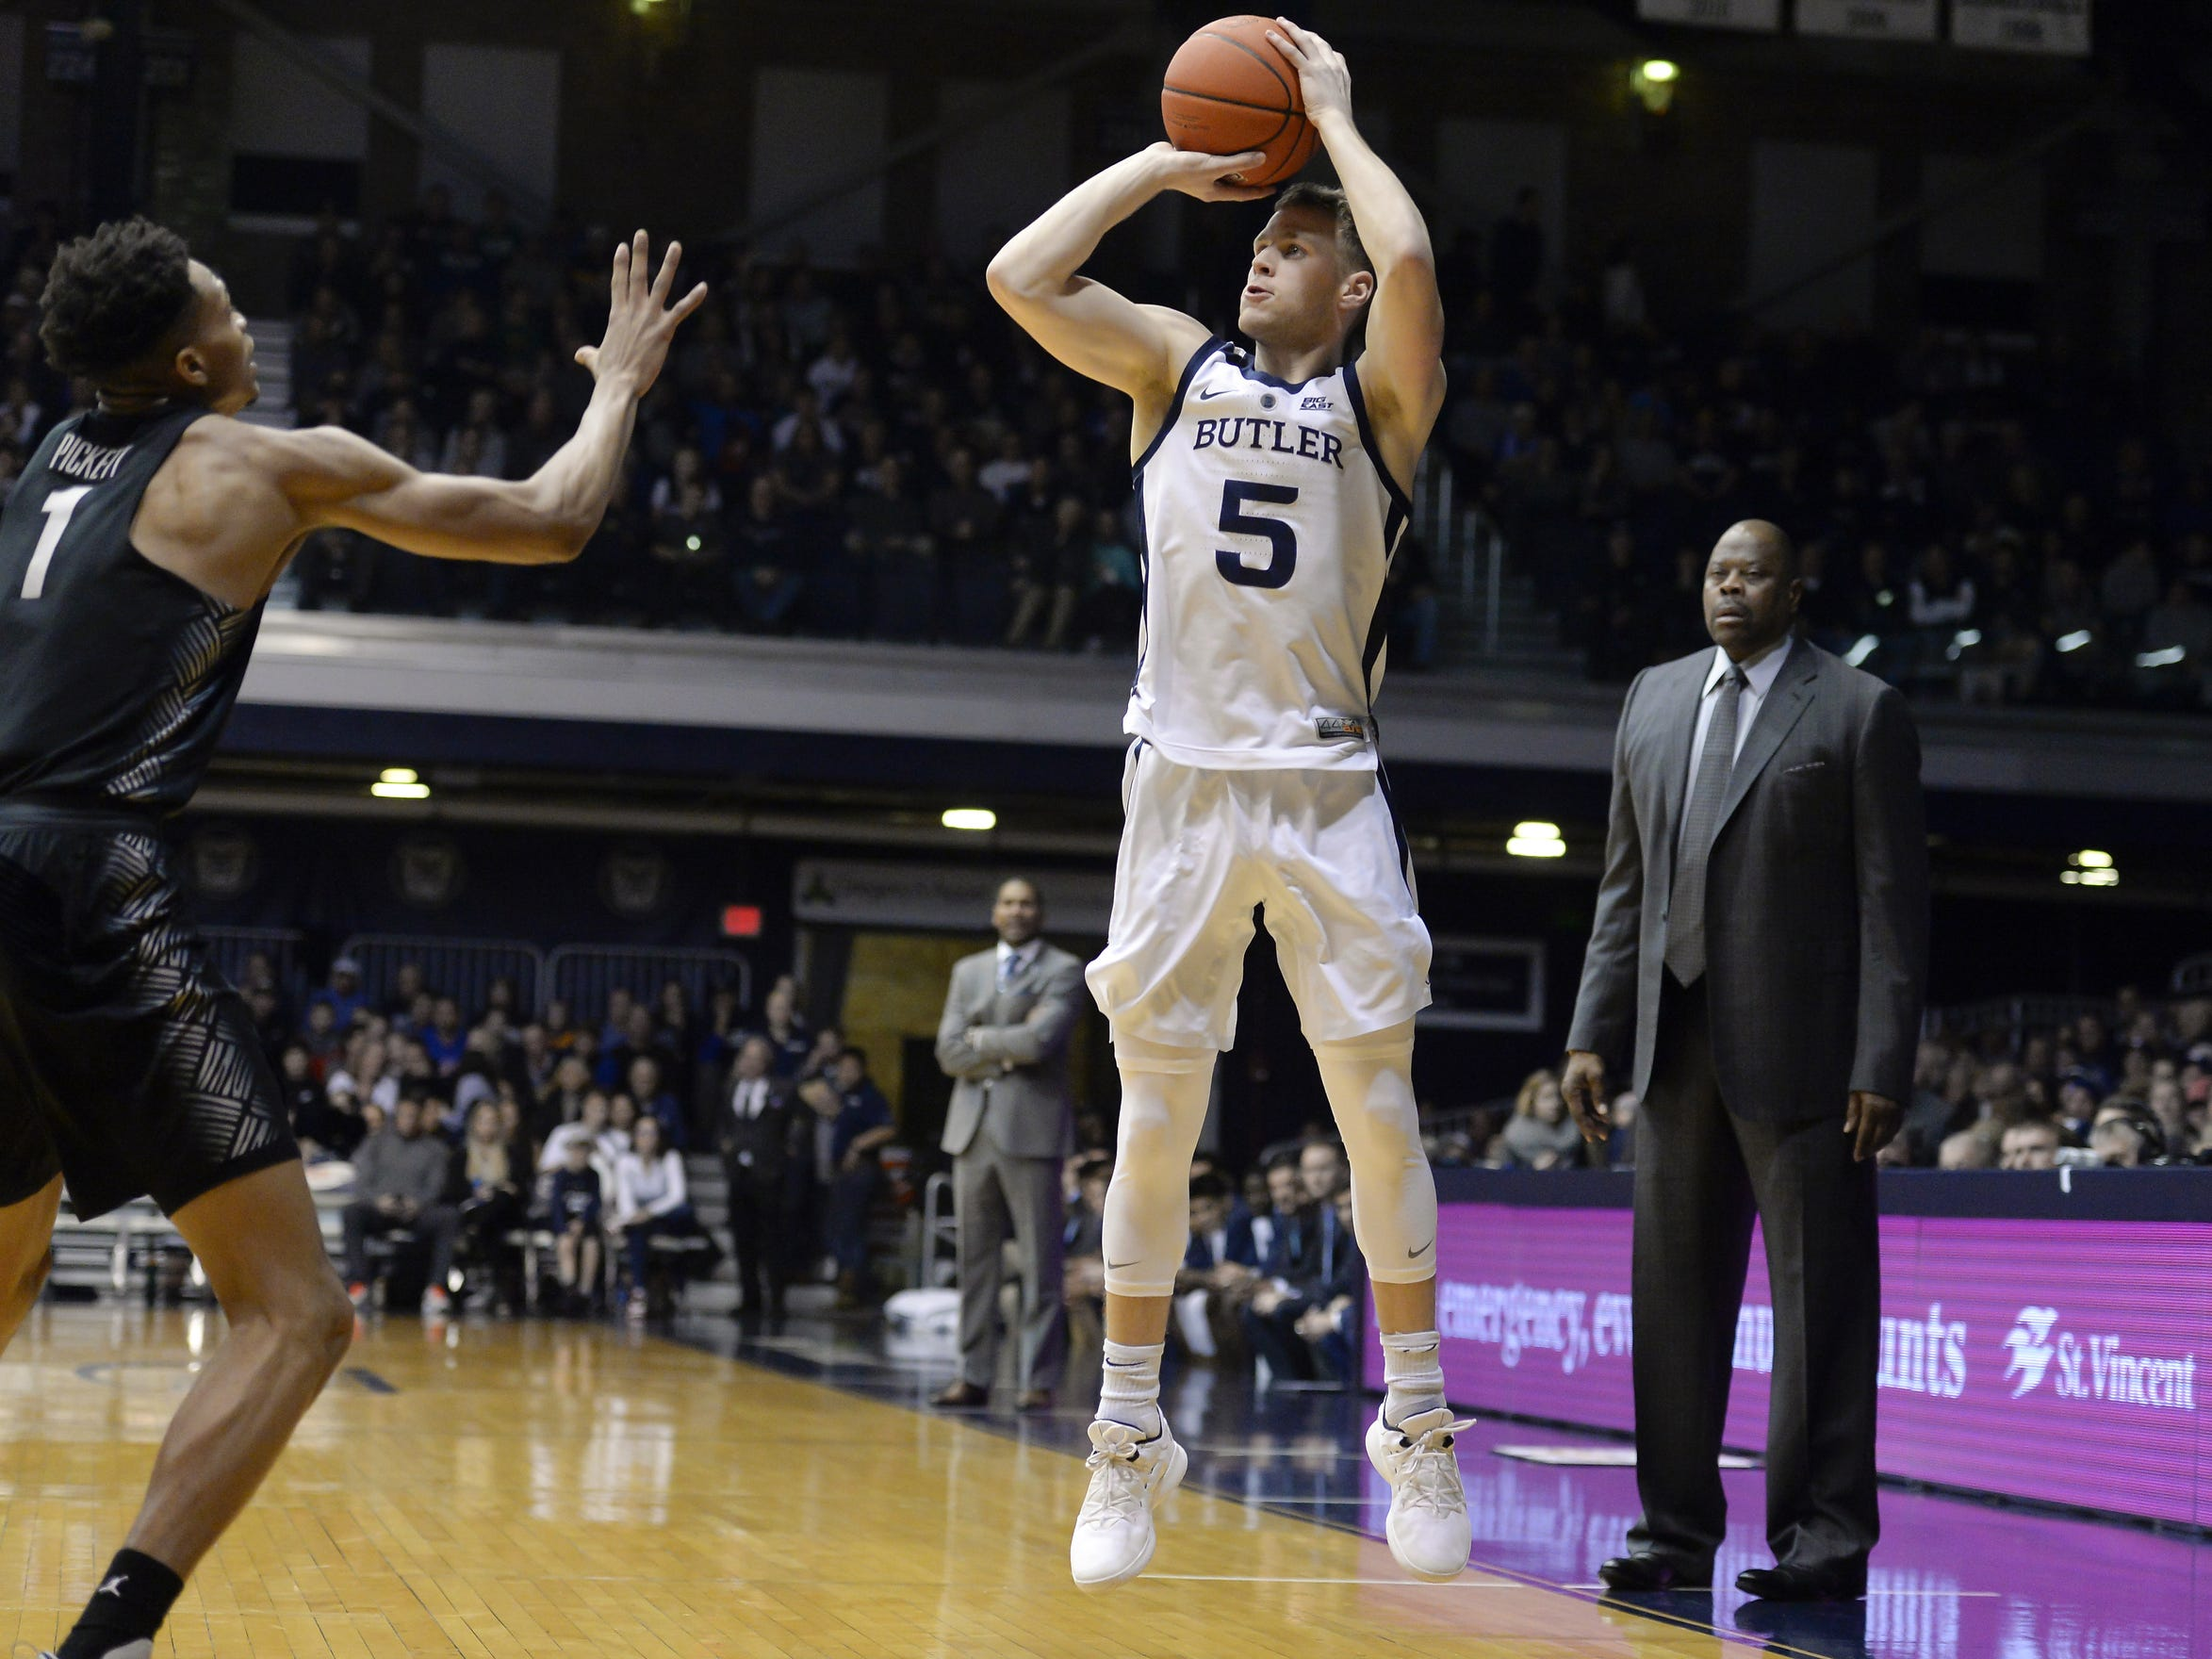 Butler Bulldogs guard Paul Jorgensen (5) puts up a shot against the Georgetown Hoyas during the first half of game action between Butler University and Georgetown University, at Hinkle Fieldhouse in Indianapolis, Indiana on Wednesday, Jan. 2, 2019.